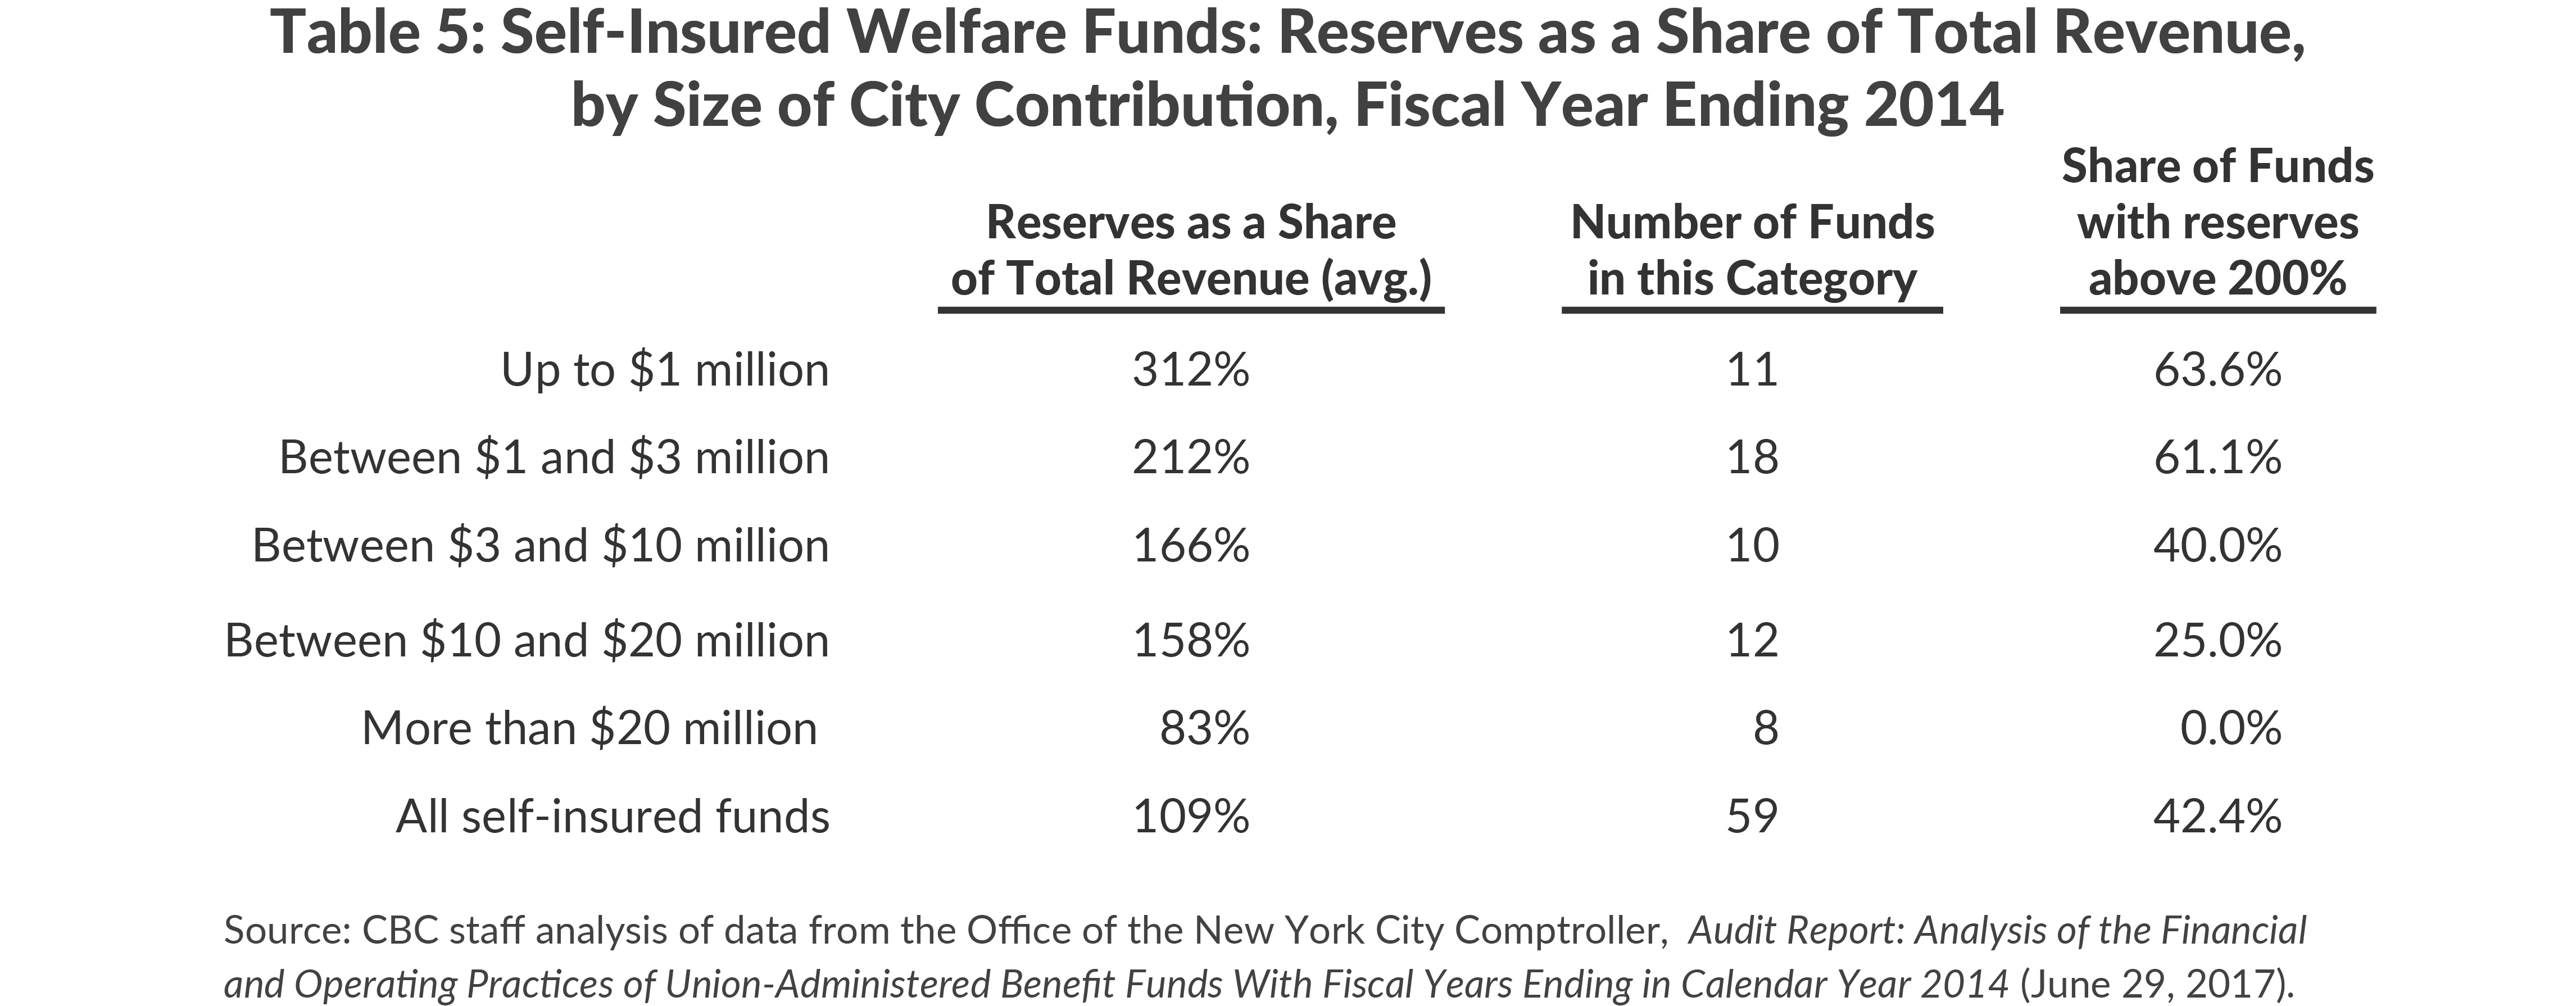 Table 5: Self-Insured Welfare Funds: Reserves as a Share of Total Revenue,by Size of City Contribution, Fiscal Year Ending 2014